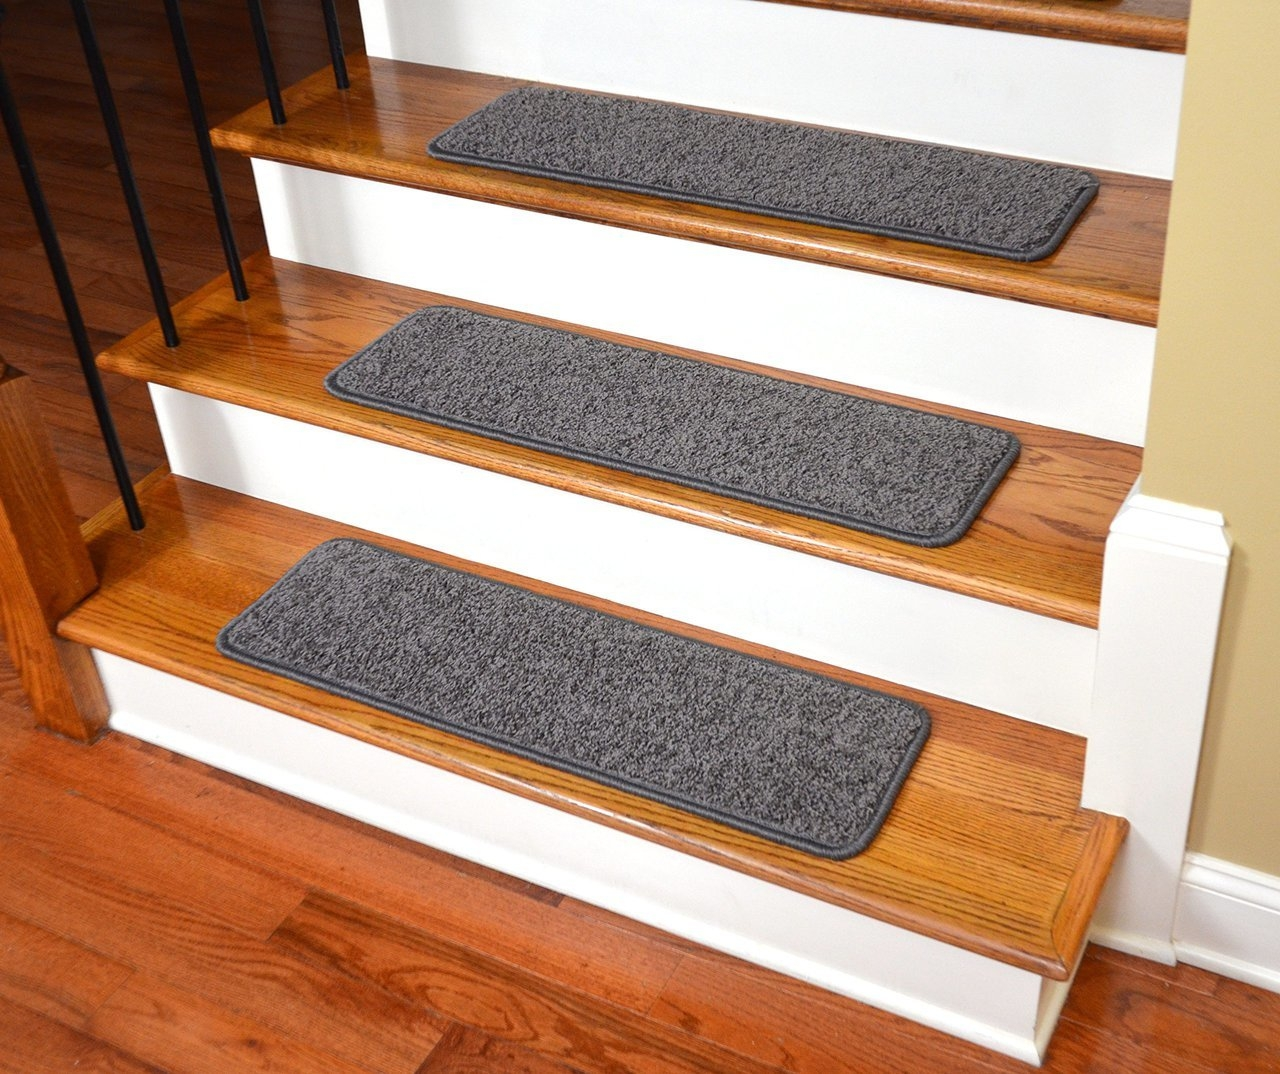 Pet Friendly Carpet Stair Treads Deanstairtreads With Carpet Stair Treads For Dogs (Image 13 of 15)